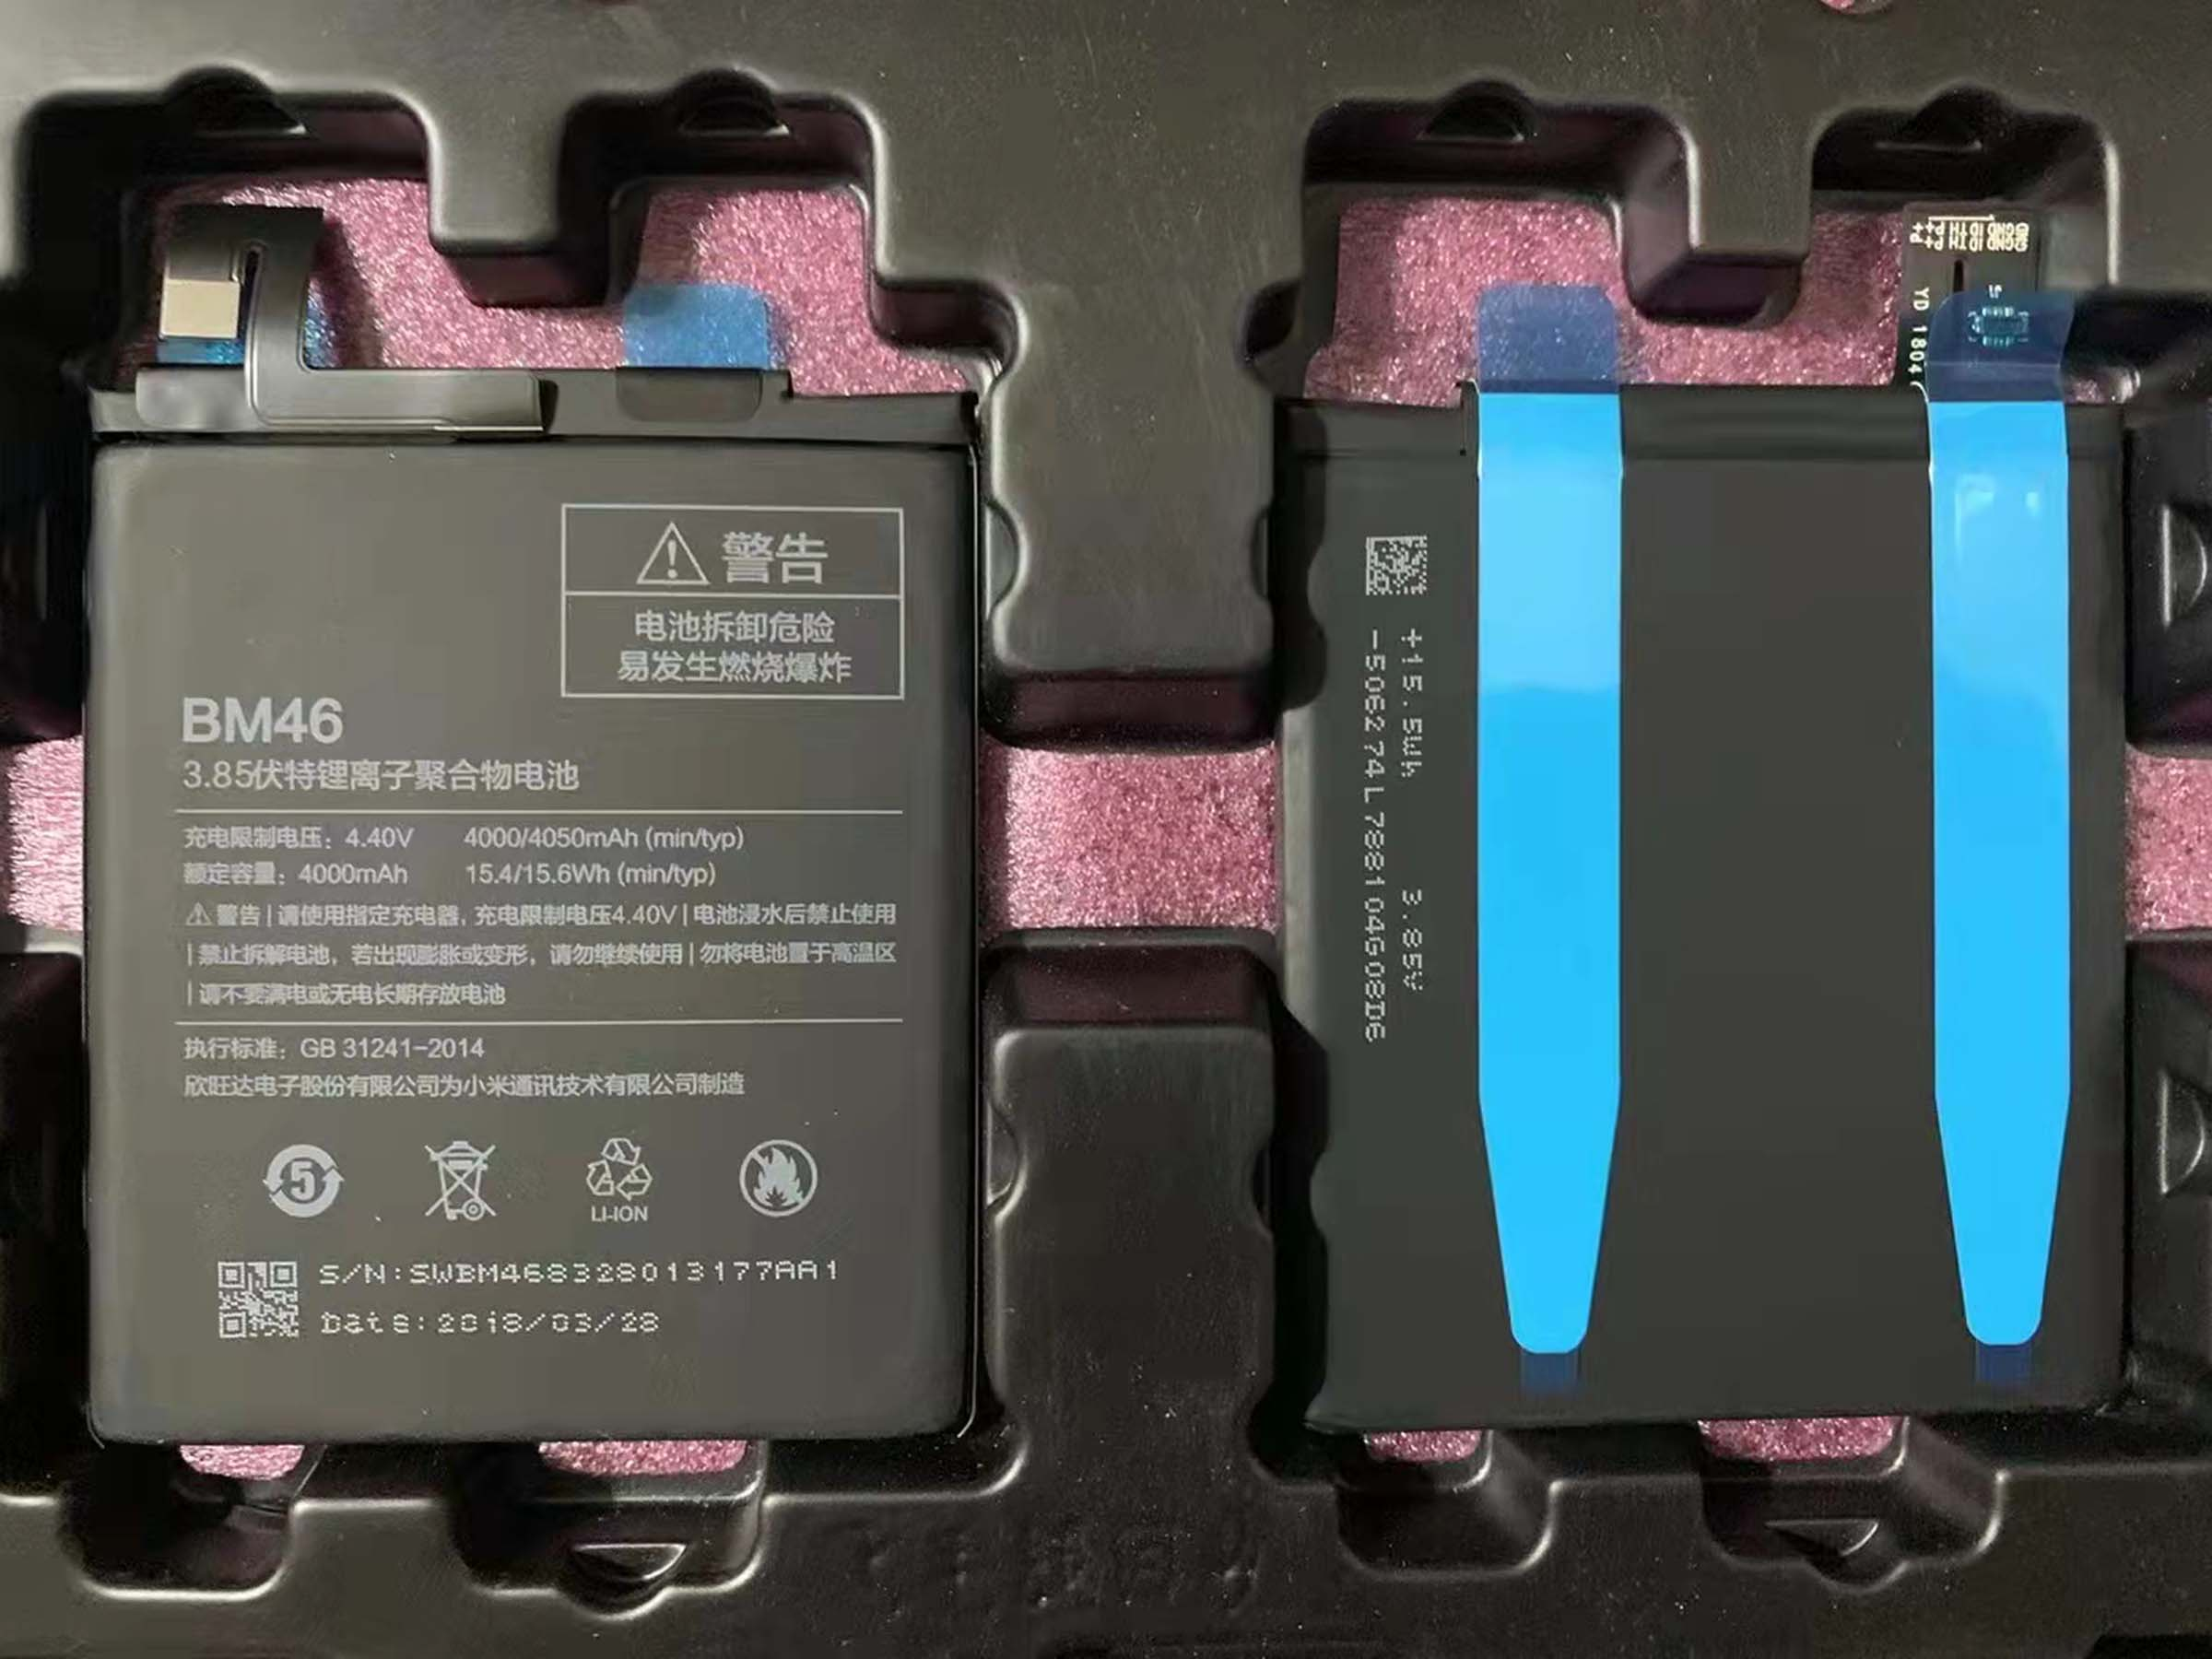 Original 4050mAh BM46 Built-in Battery for Redmi Note3 (only Deliver to some countries)